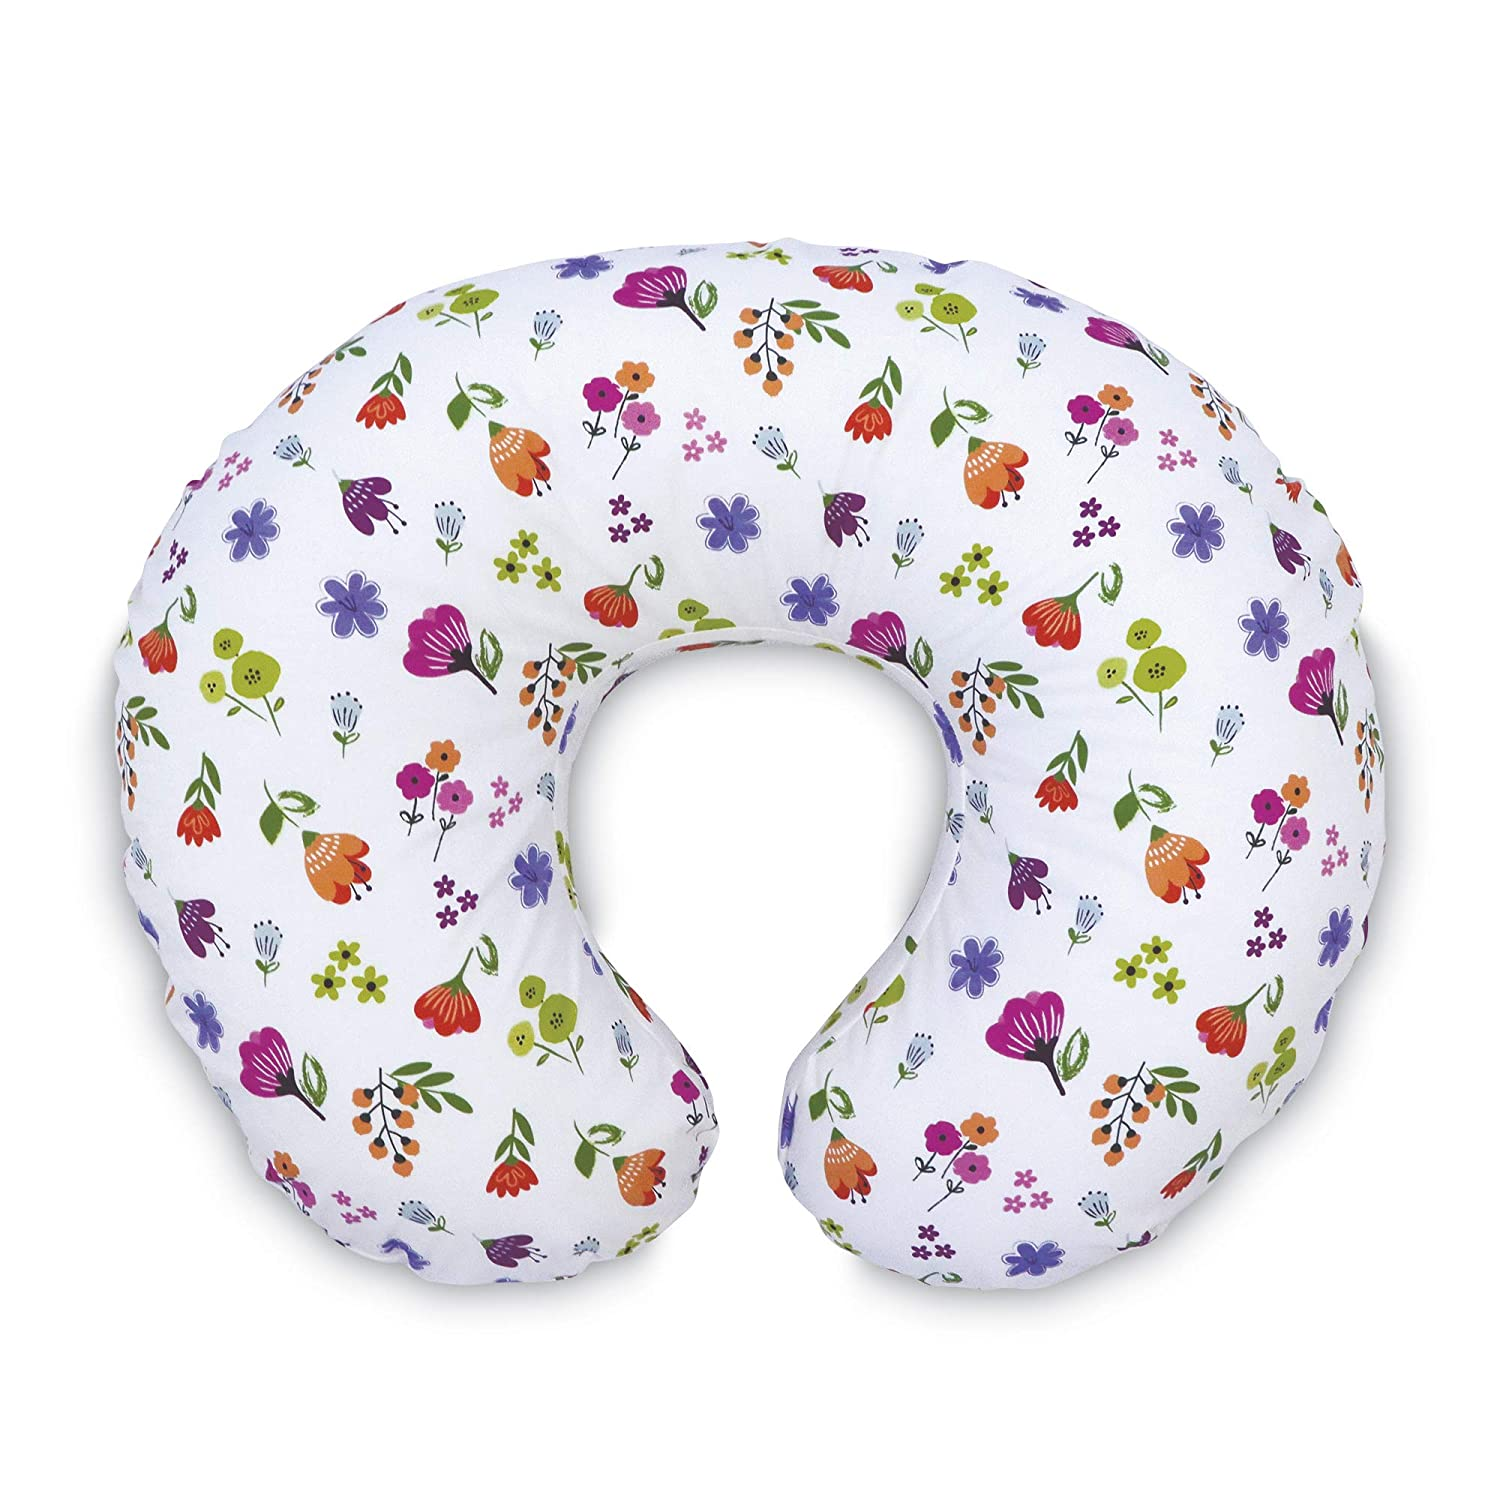 Boppy Original Nursing Pillow Cover, Bright Blooms, Cotton Blend Fabric with Allover Fashion, Fits All Boppy Nursing Pillows and Positioners